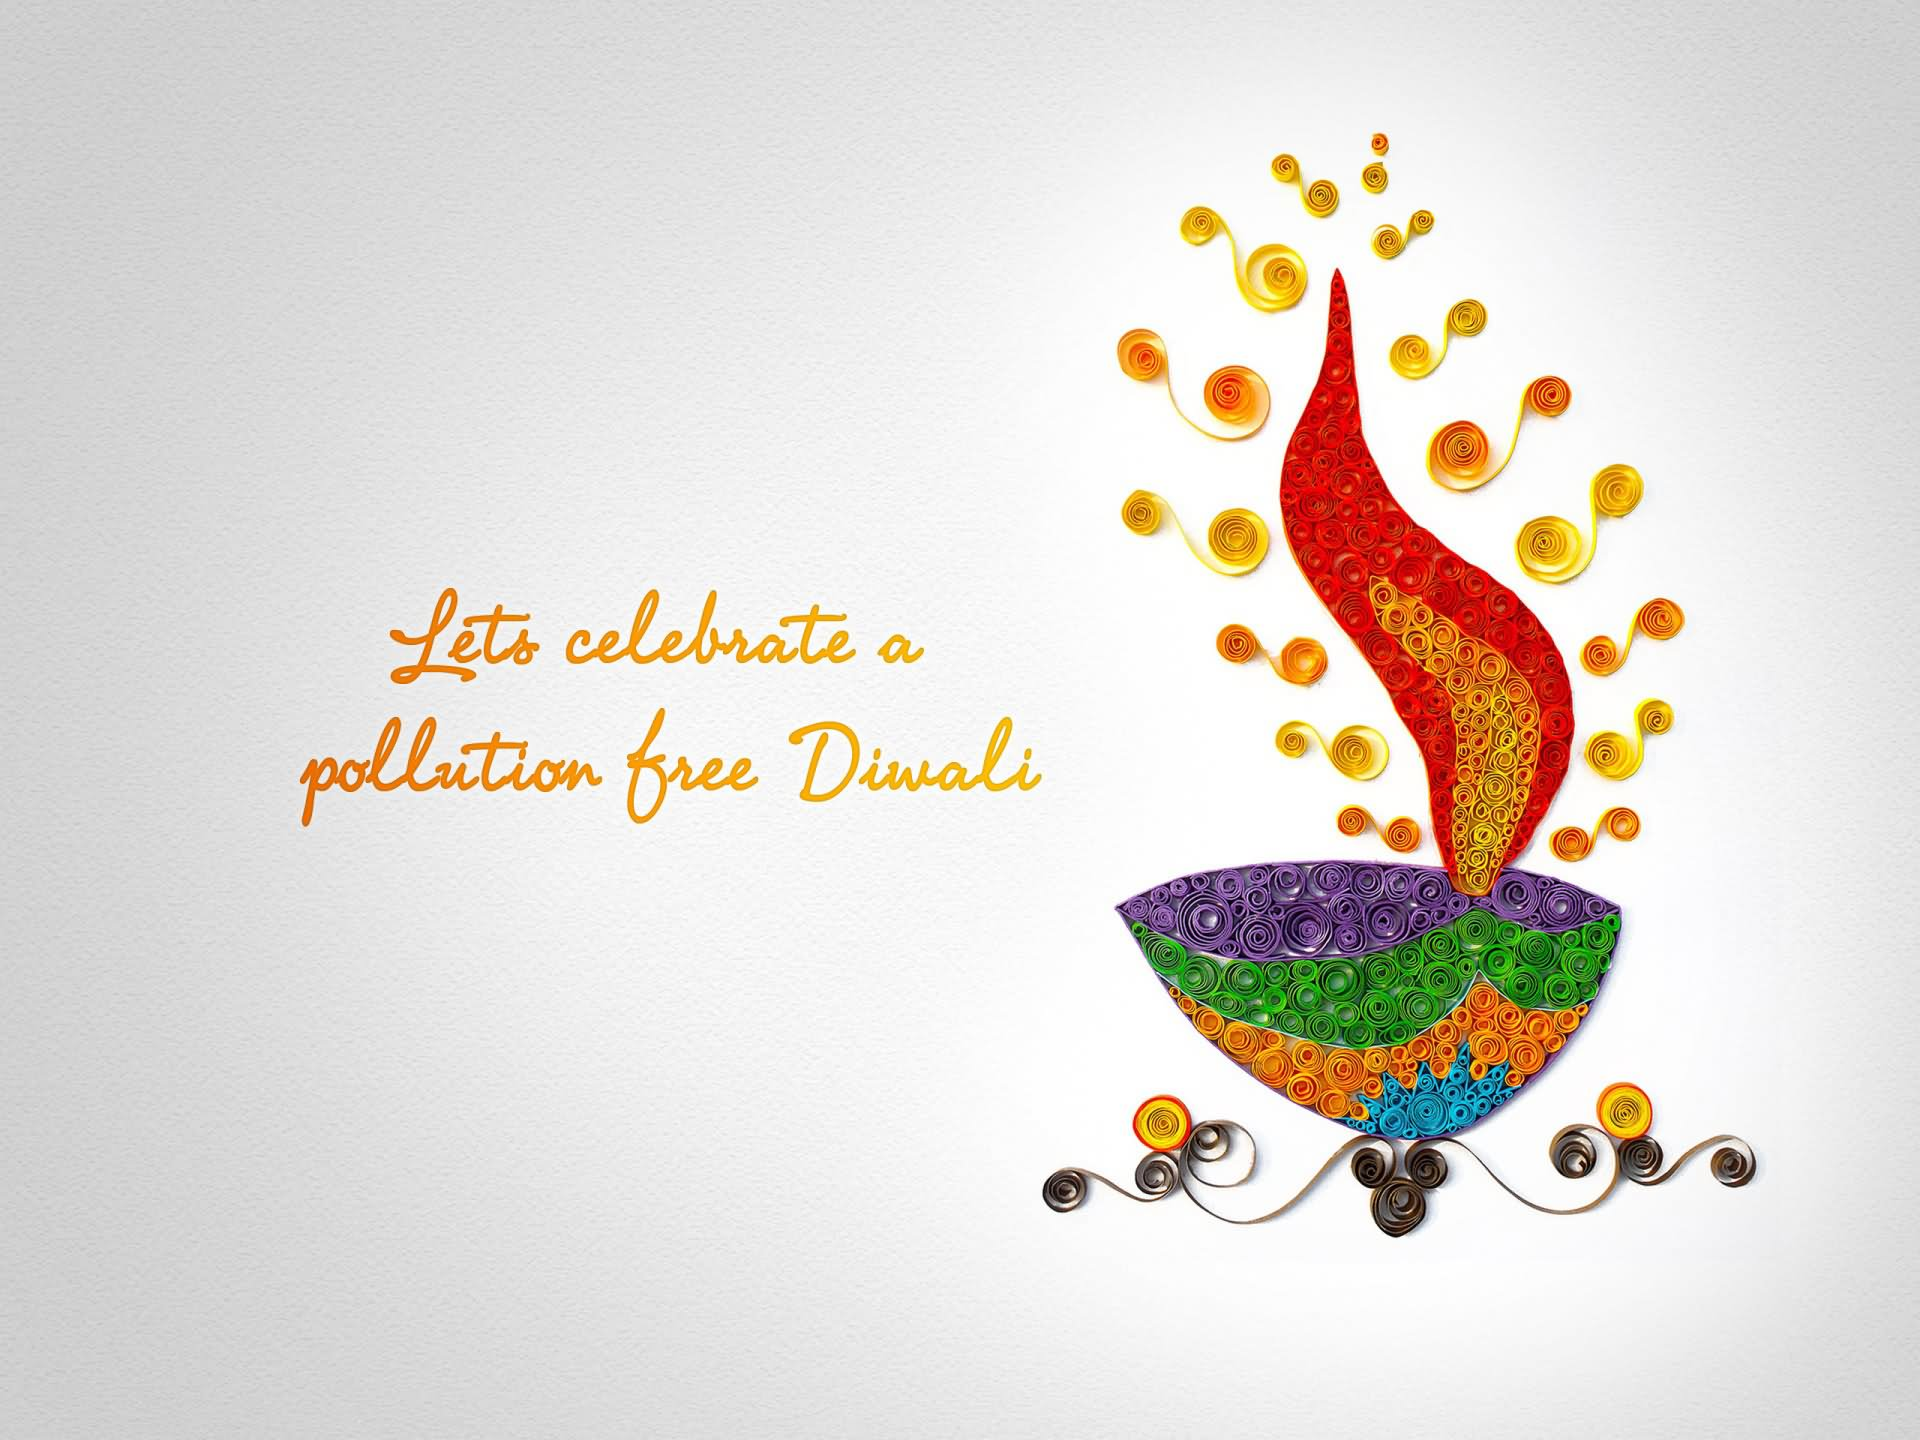 Lets Celebrate A Pollution Free Diwali